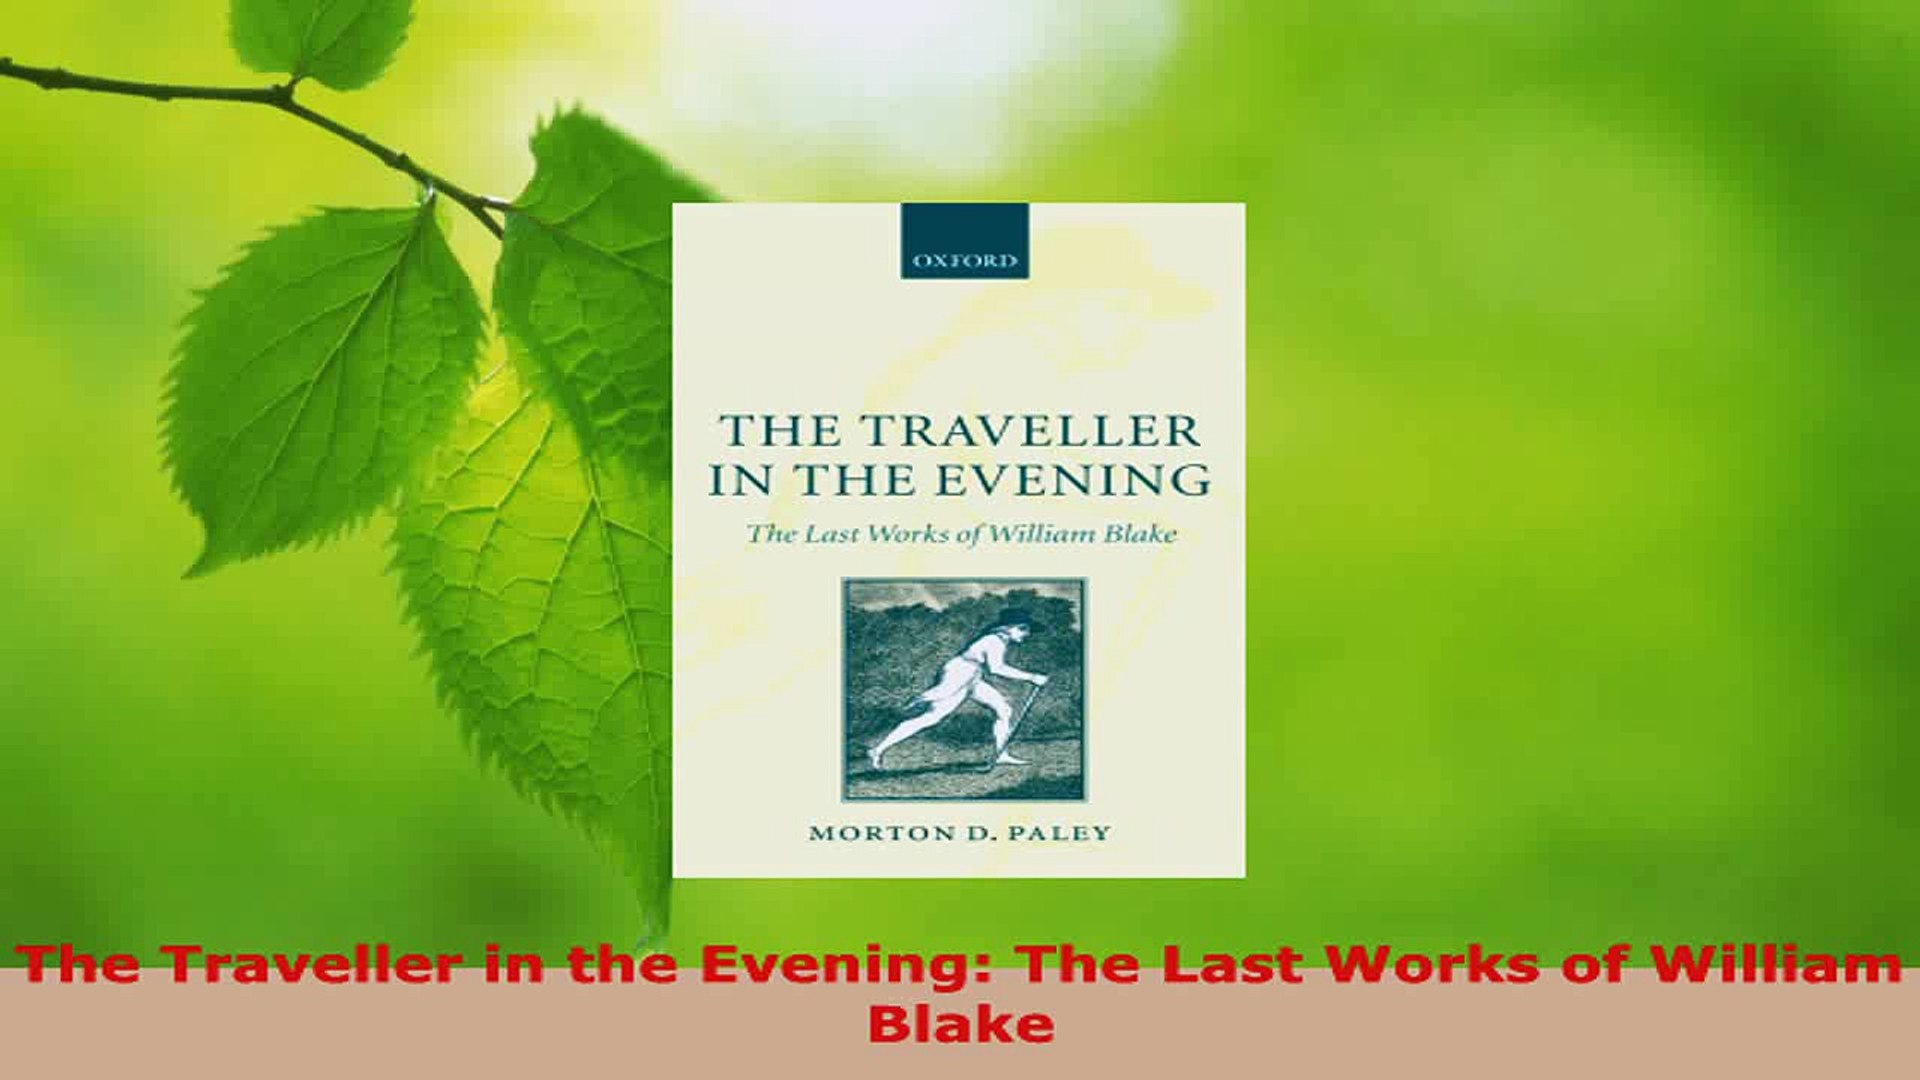 The Traveller in the Evening The Last Works of William Blake